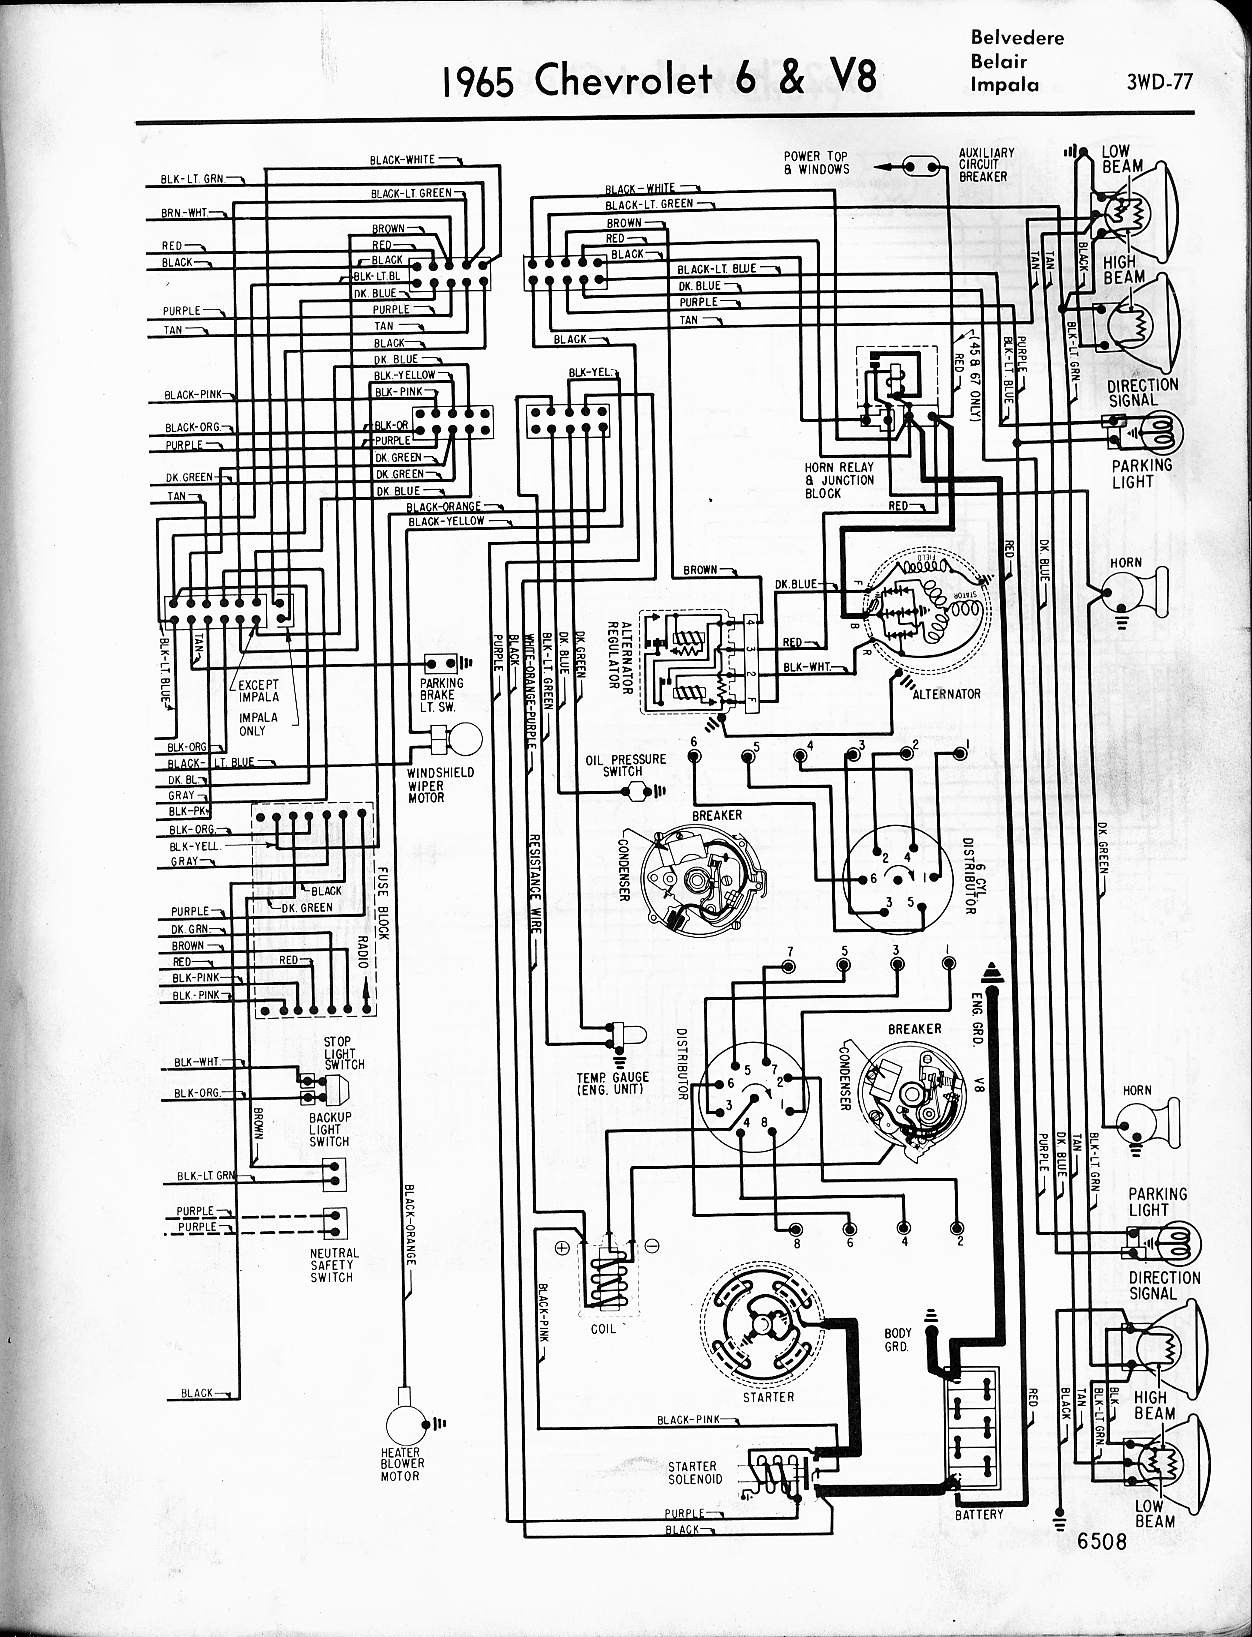 chevy malibu wiring diagram besides 1961 chevy impala wiring diagram rh  onzegroup co 2002 Chevy Impala Fuse Box 1957 Chevy Fuse Box Diagram